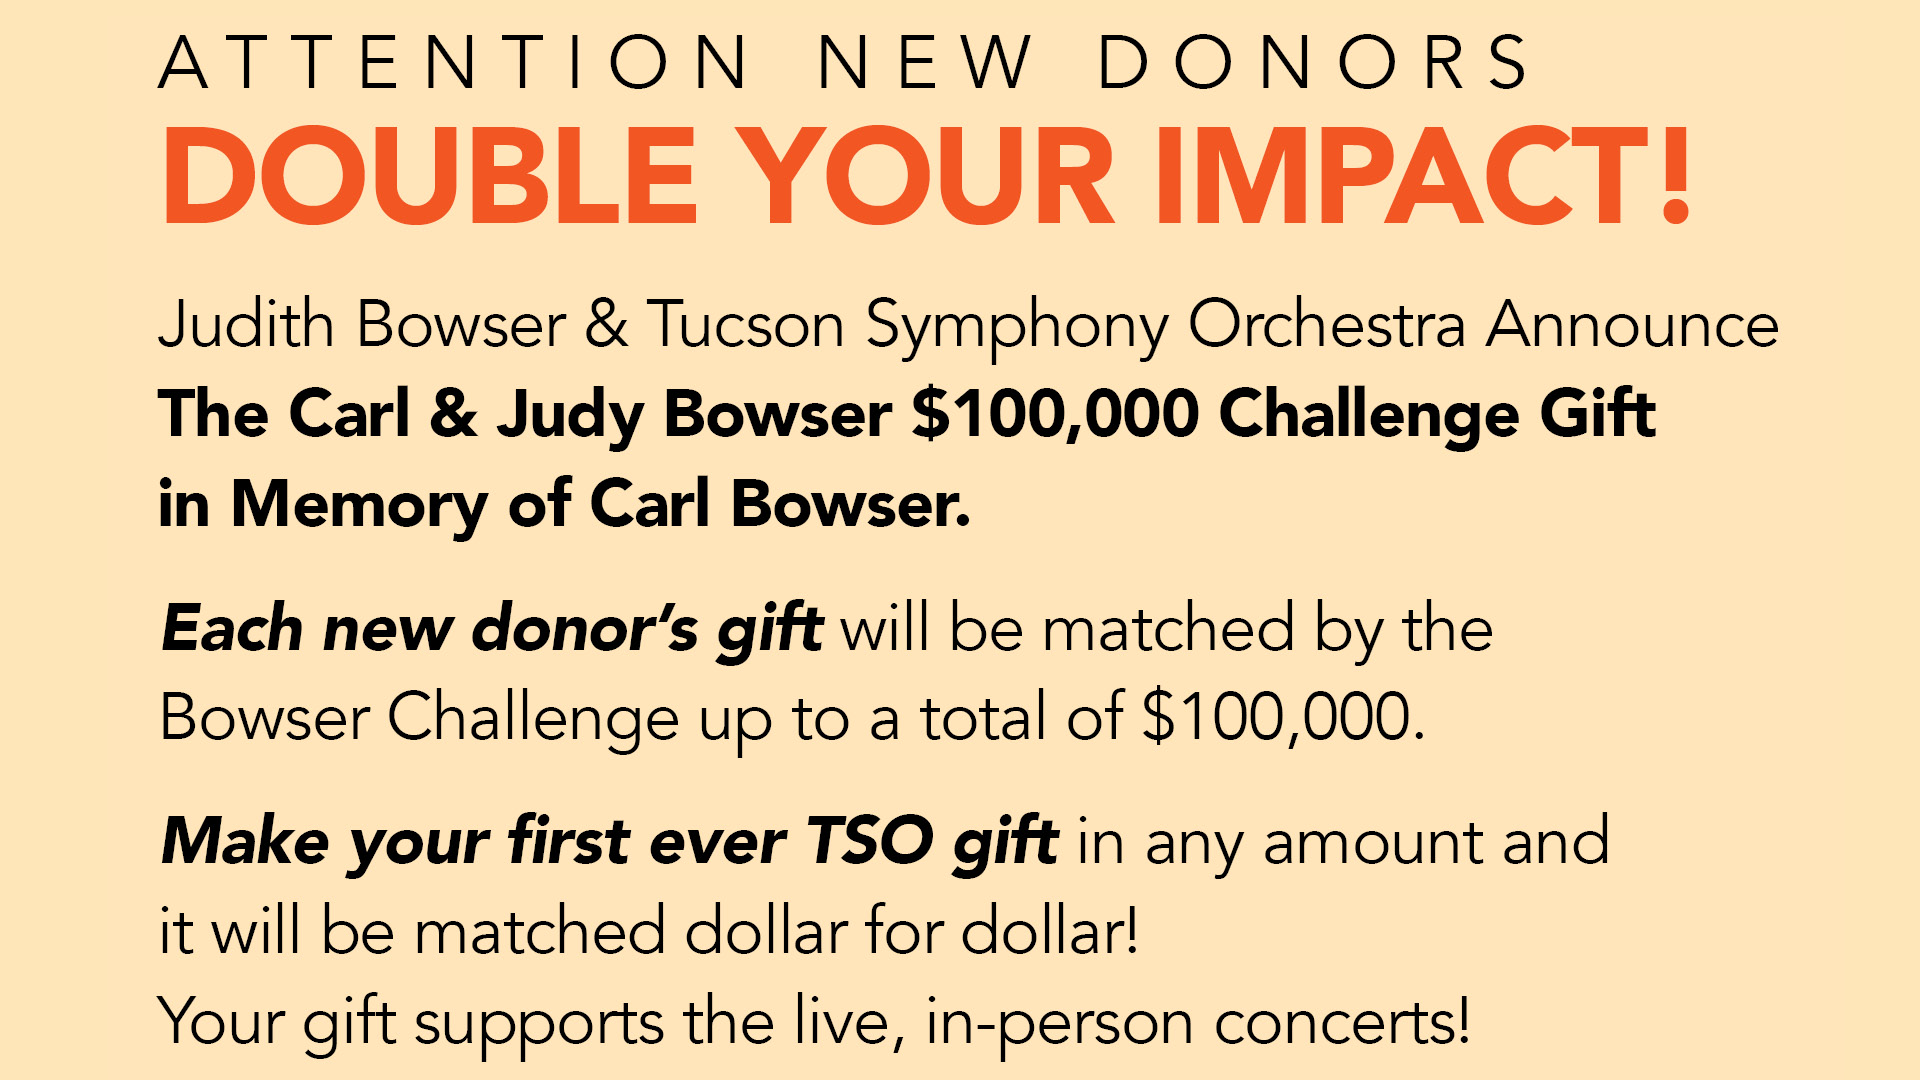 Attention New Donors: Double Your Impact! Judith Bowser & TSO announce The Carl & Judy Bowser $100,000 Challenge Gift in Memory of Carl Bowser. Each new donor's gift will be matched by the Bowser Challenge up to a total of $100,000. Make your first ever TSO gift in any amount and it will be matched dollar for dollar! Your gift supports the live, in-person concerts!